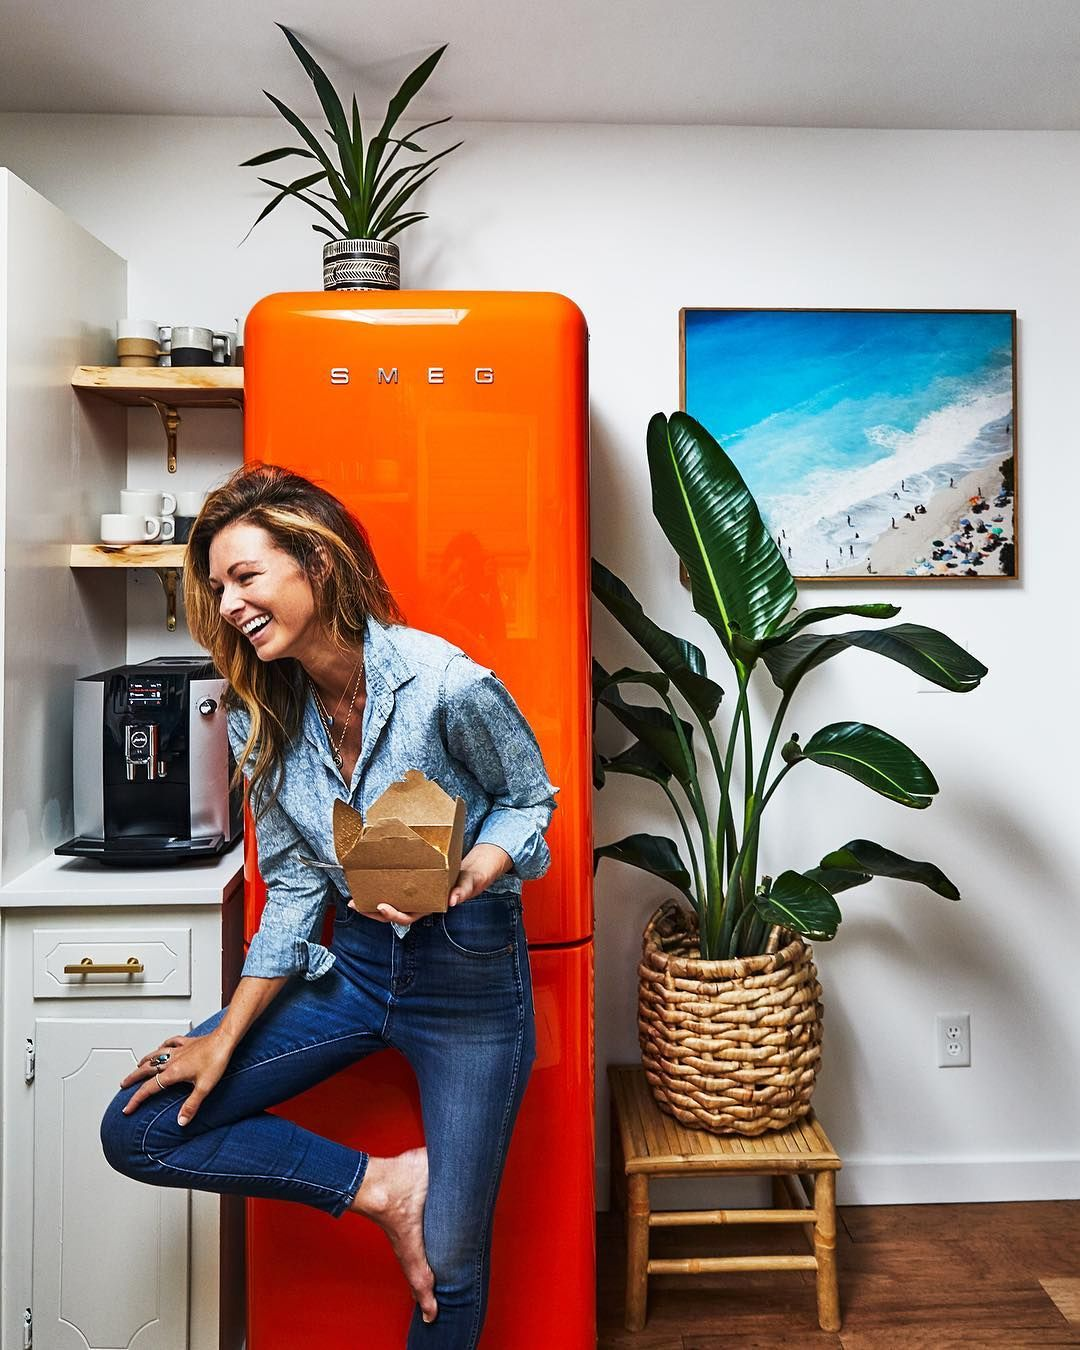 Chelsea Meissner On Instagram I Love My Fridge So Much Sometimes I Physically Hug It Smegusa Chelsea Southern Charm Chelsea News Southern Living Magazine